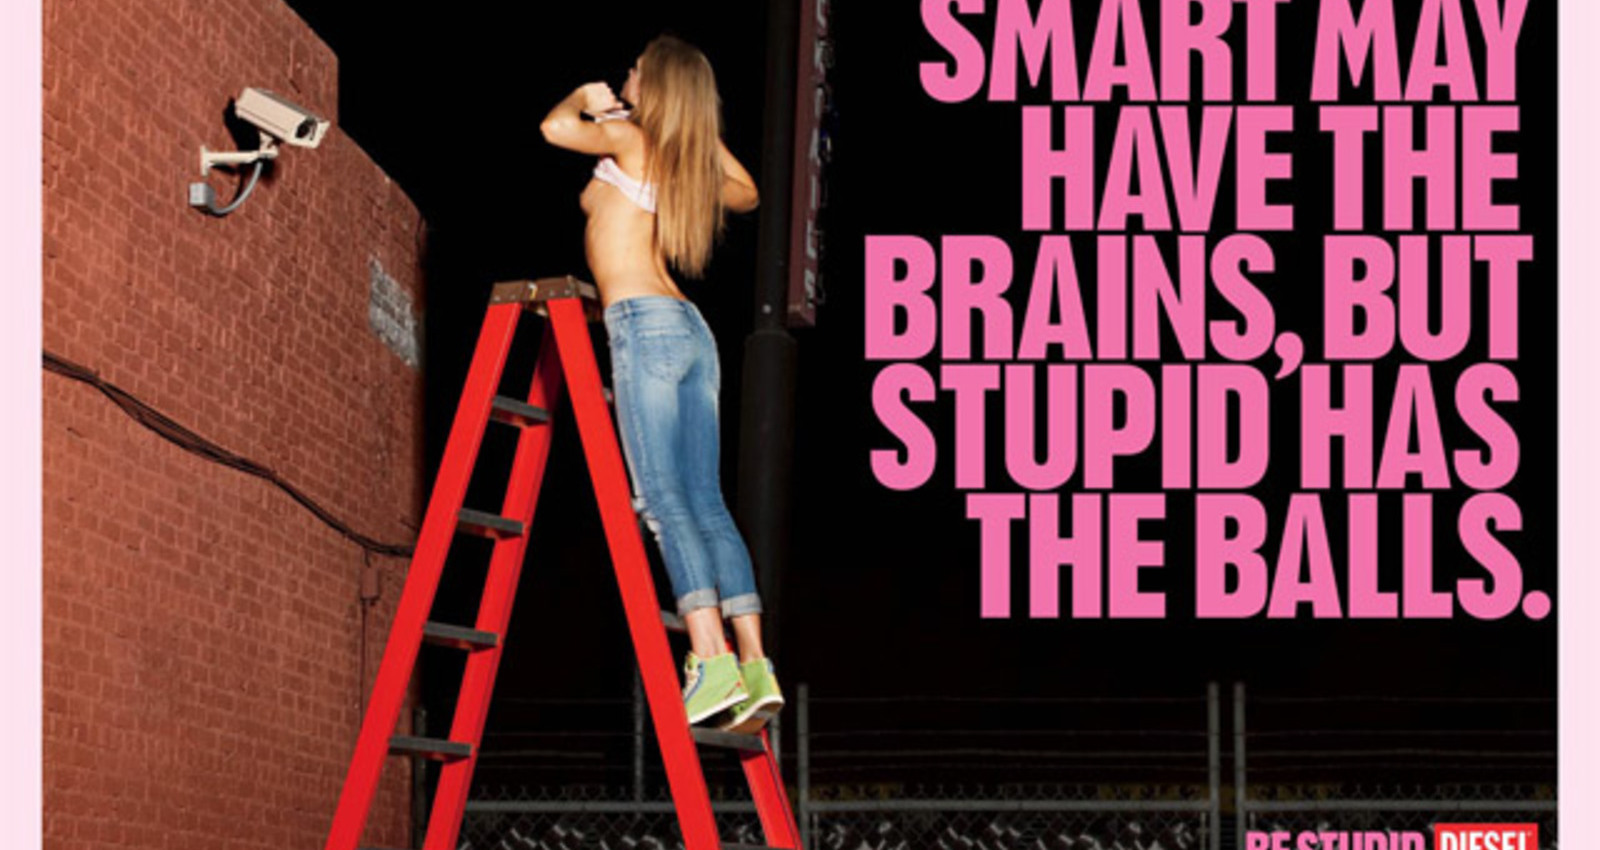 Be Stupid (Image)